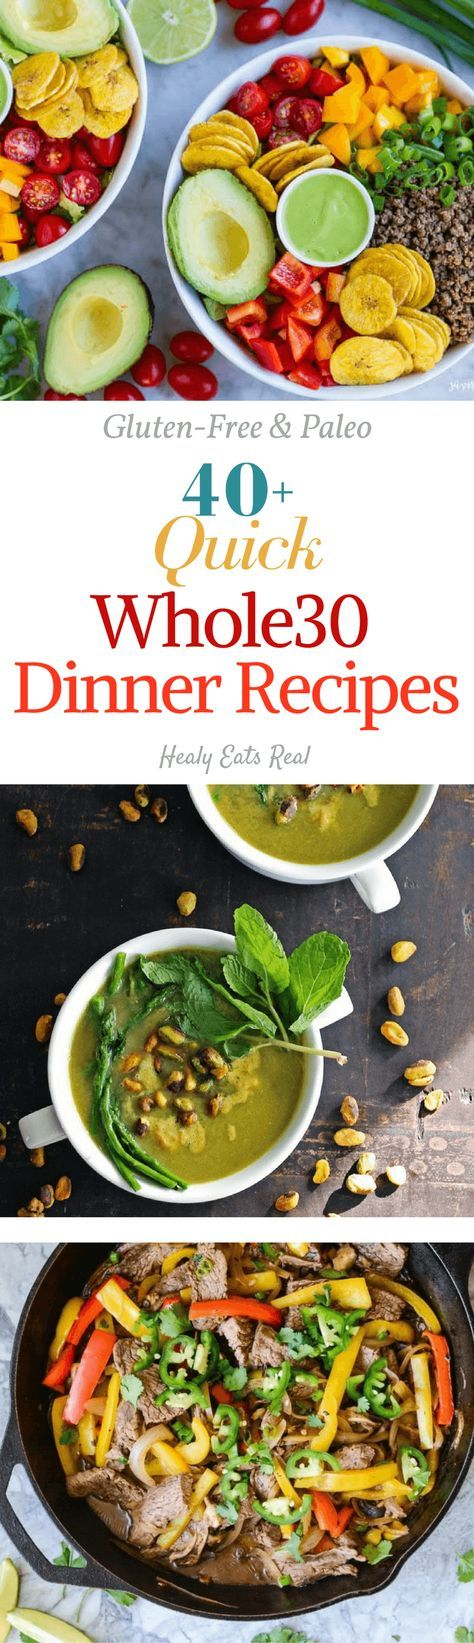 40+ Half Hour Whole 30 Dinner Recipes